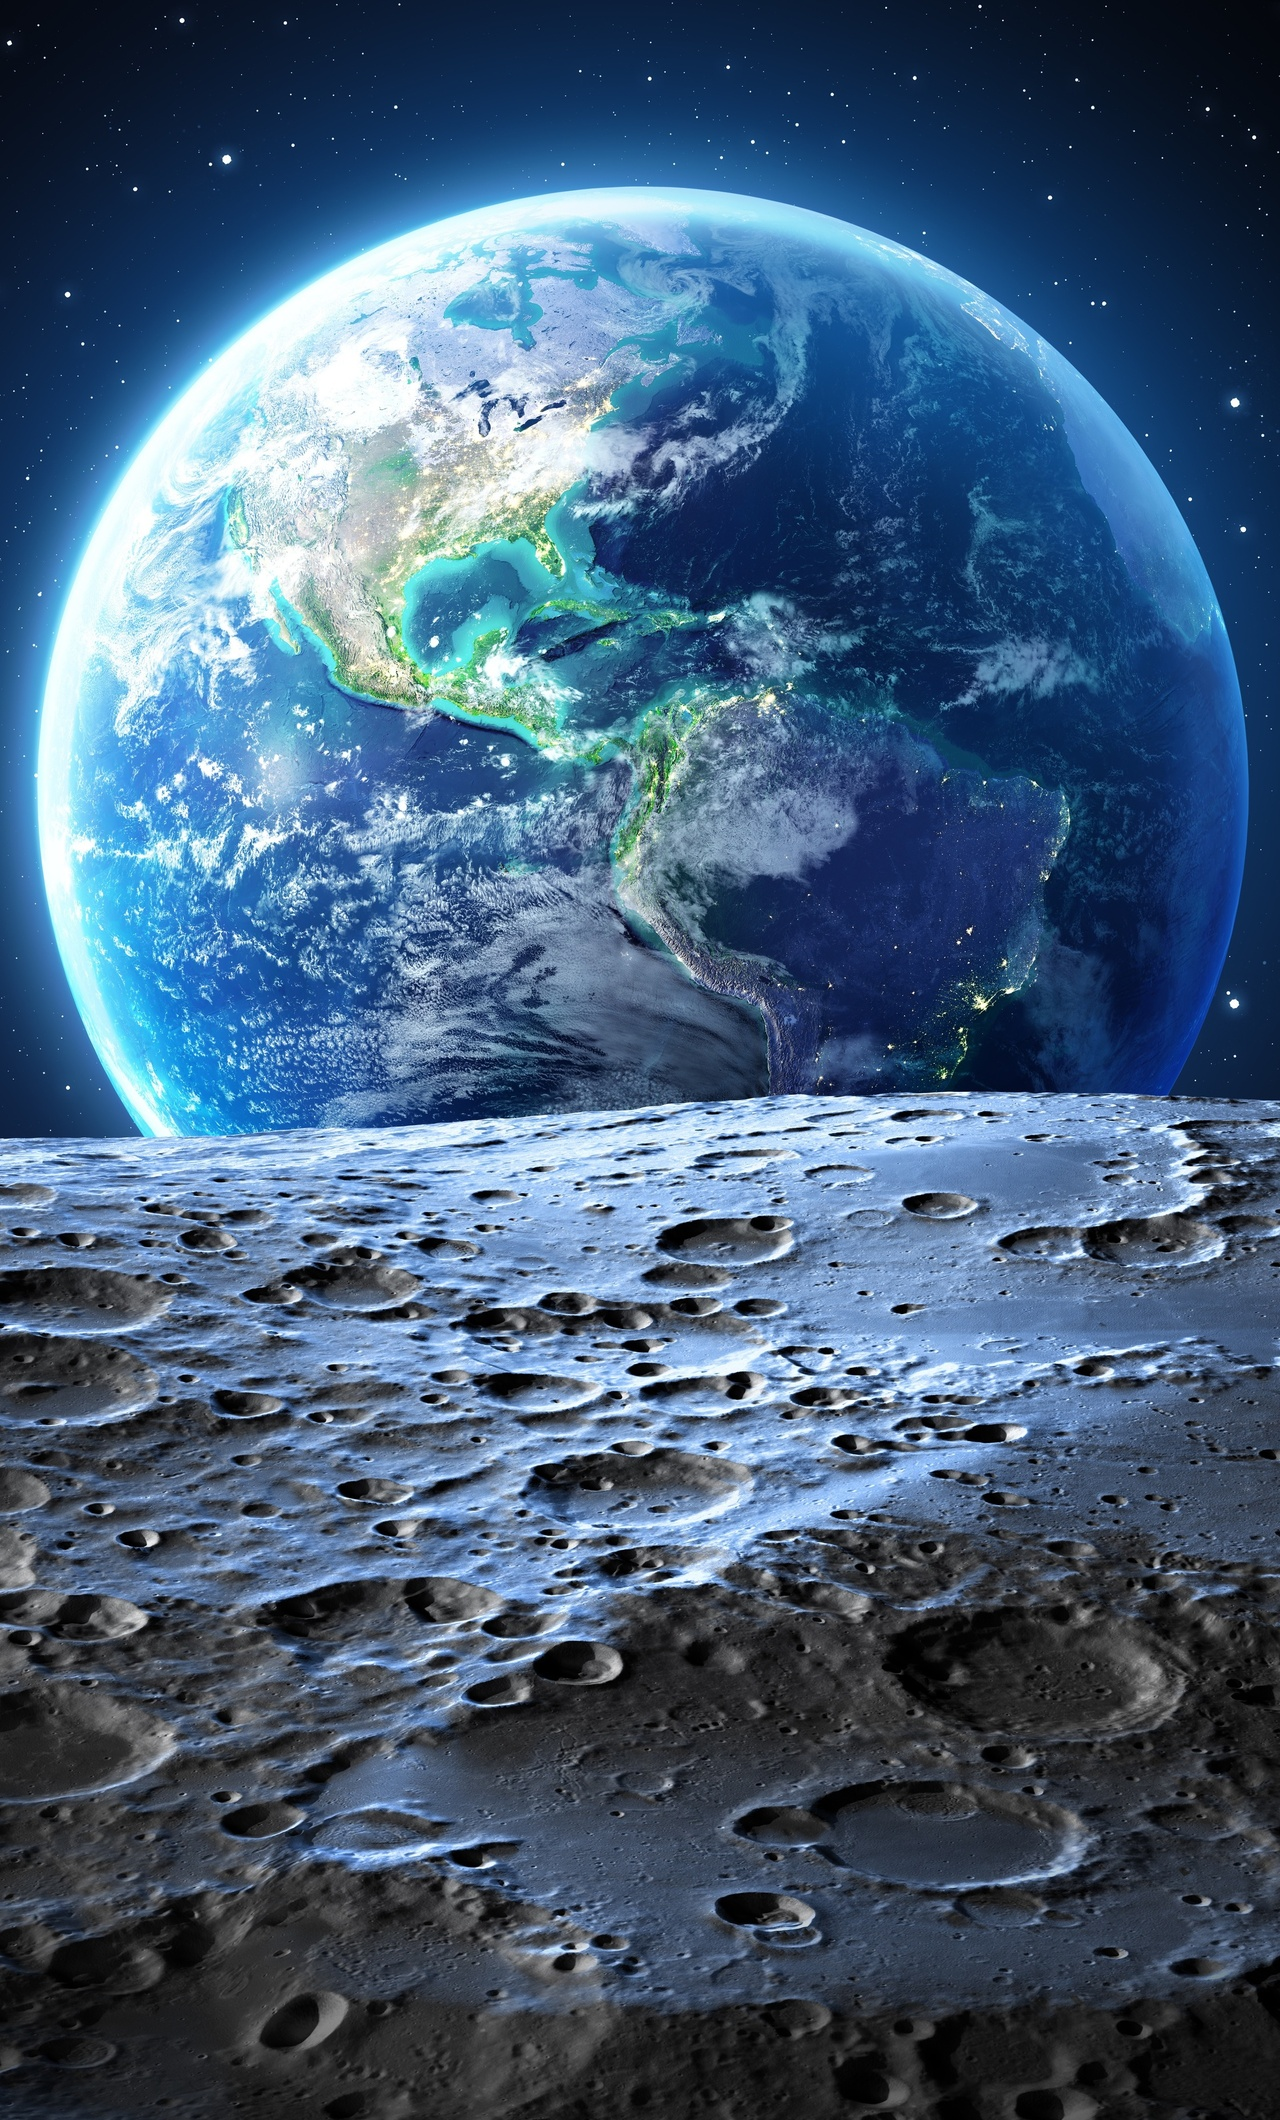 1280x2120 Earth Moon 4k iPhone 6+ HD 4k Wallpapers, Images ...